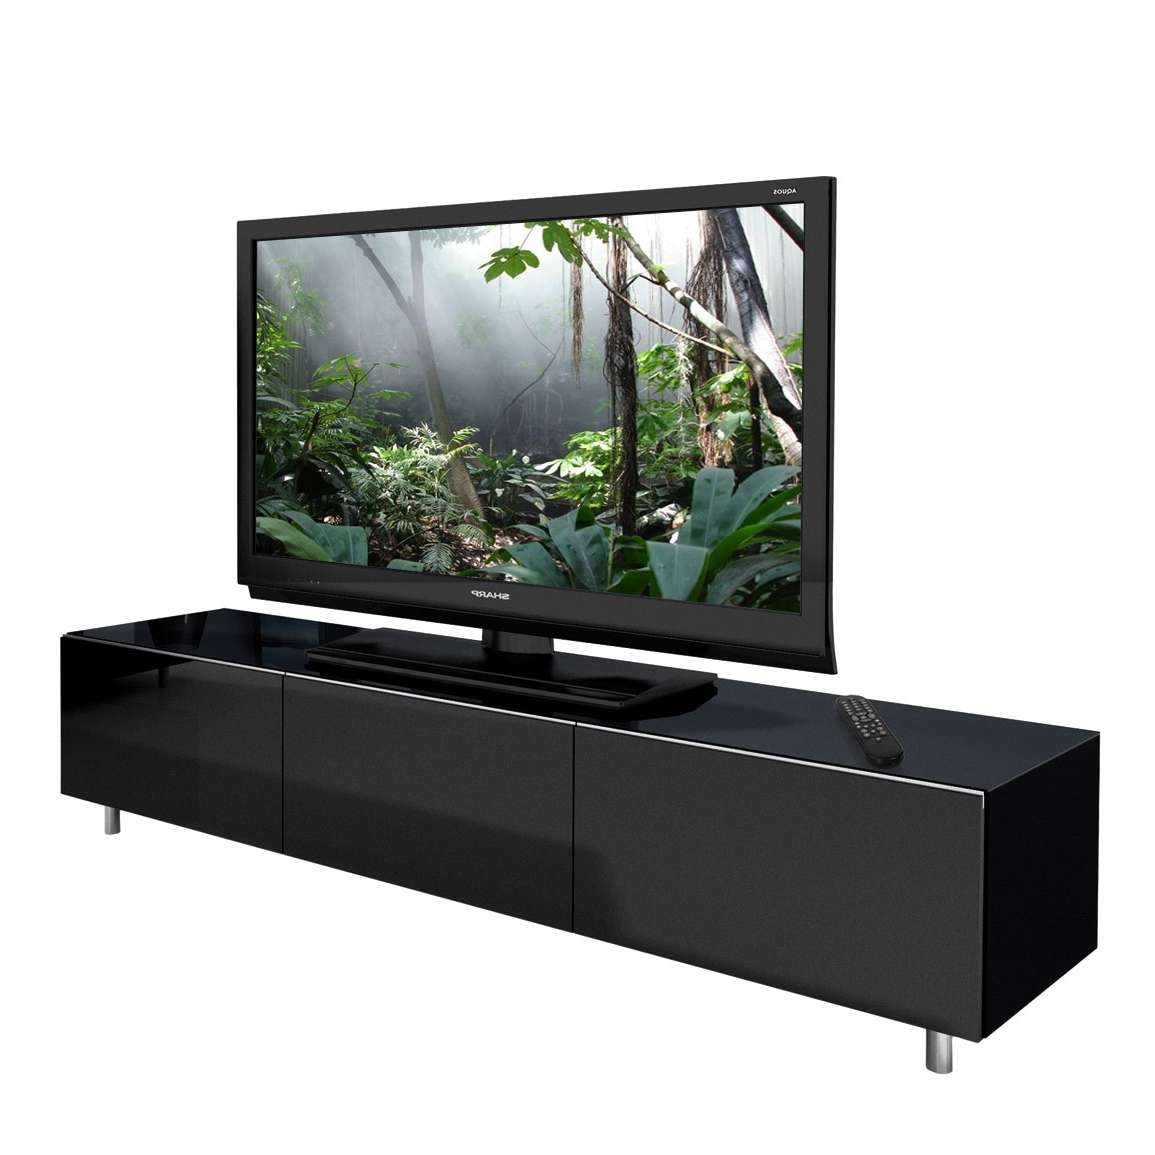 Spectral Just Racks Jrl1650S Gloss Black Tv Cabinet – Just Racks Within Shiny Black Tv Stands (View 10 of 15)